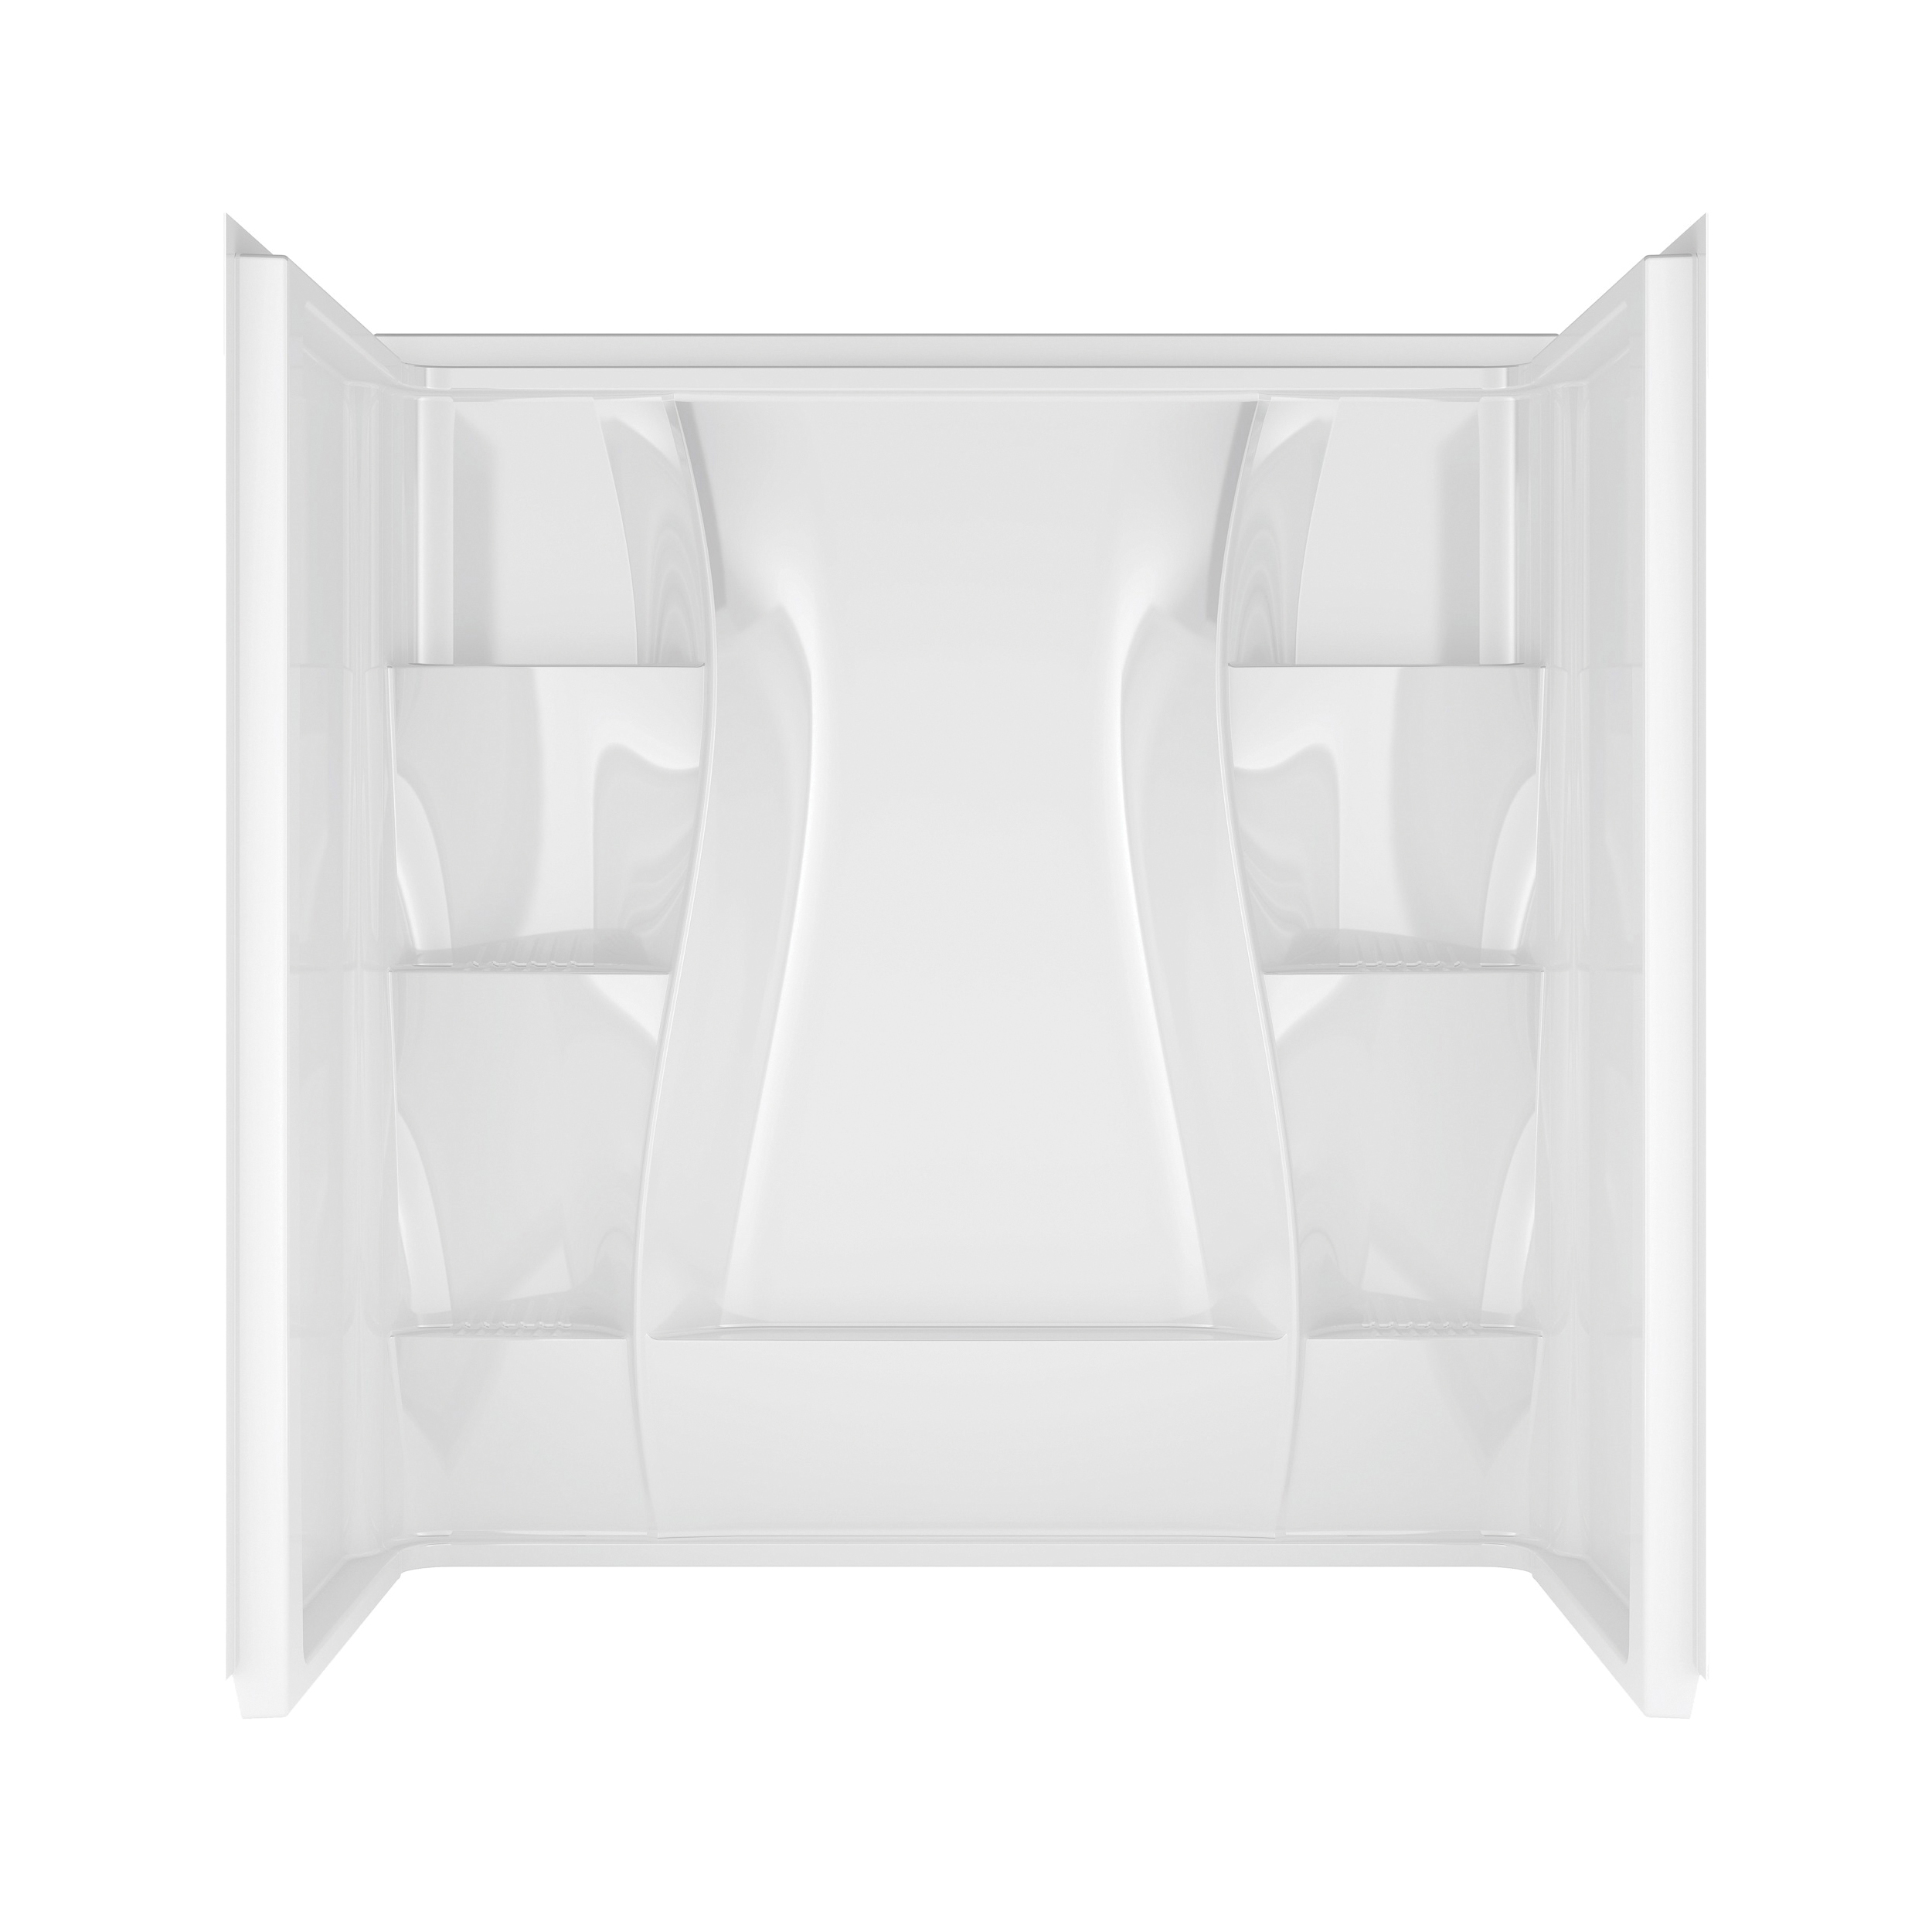 Picture of DELTA 40044 Bathtub Wall Set, 60.38 in H, 60 in W, Procrylic, White, Stud Installation